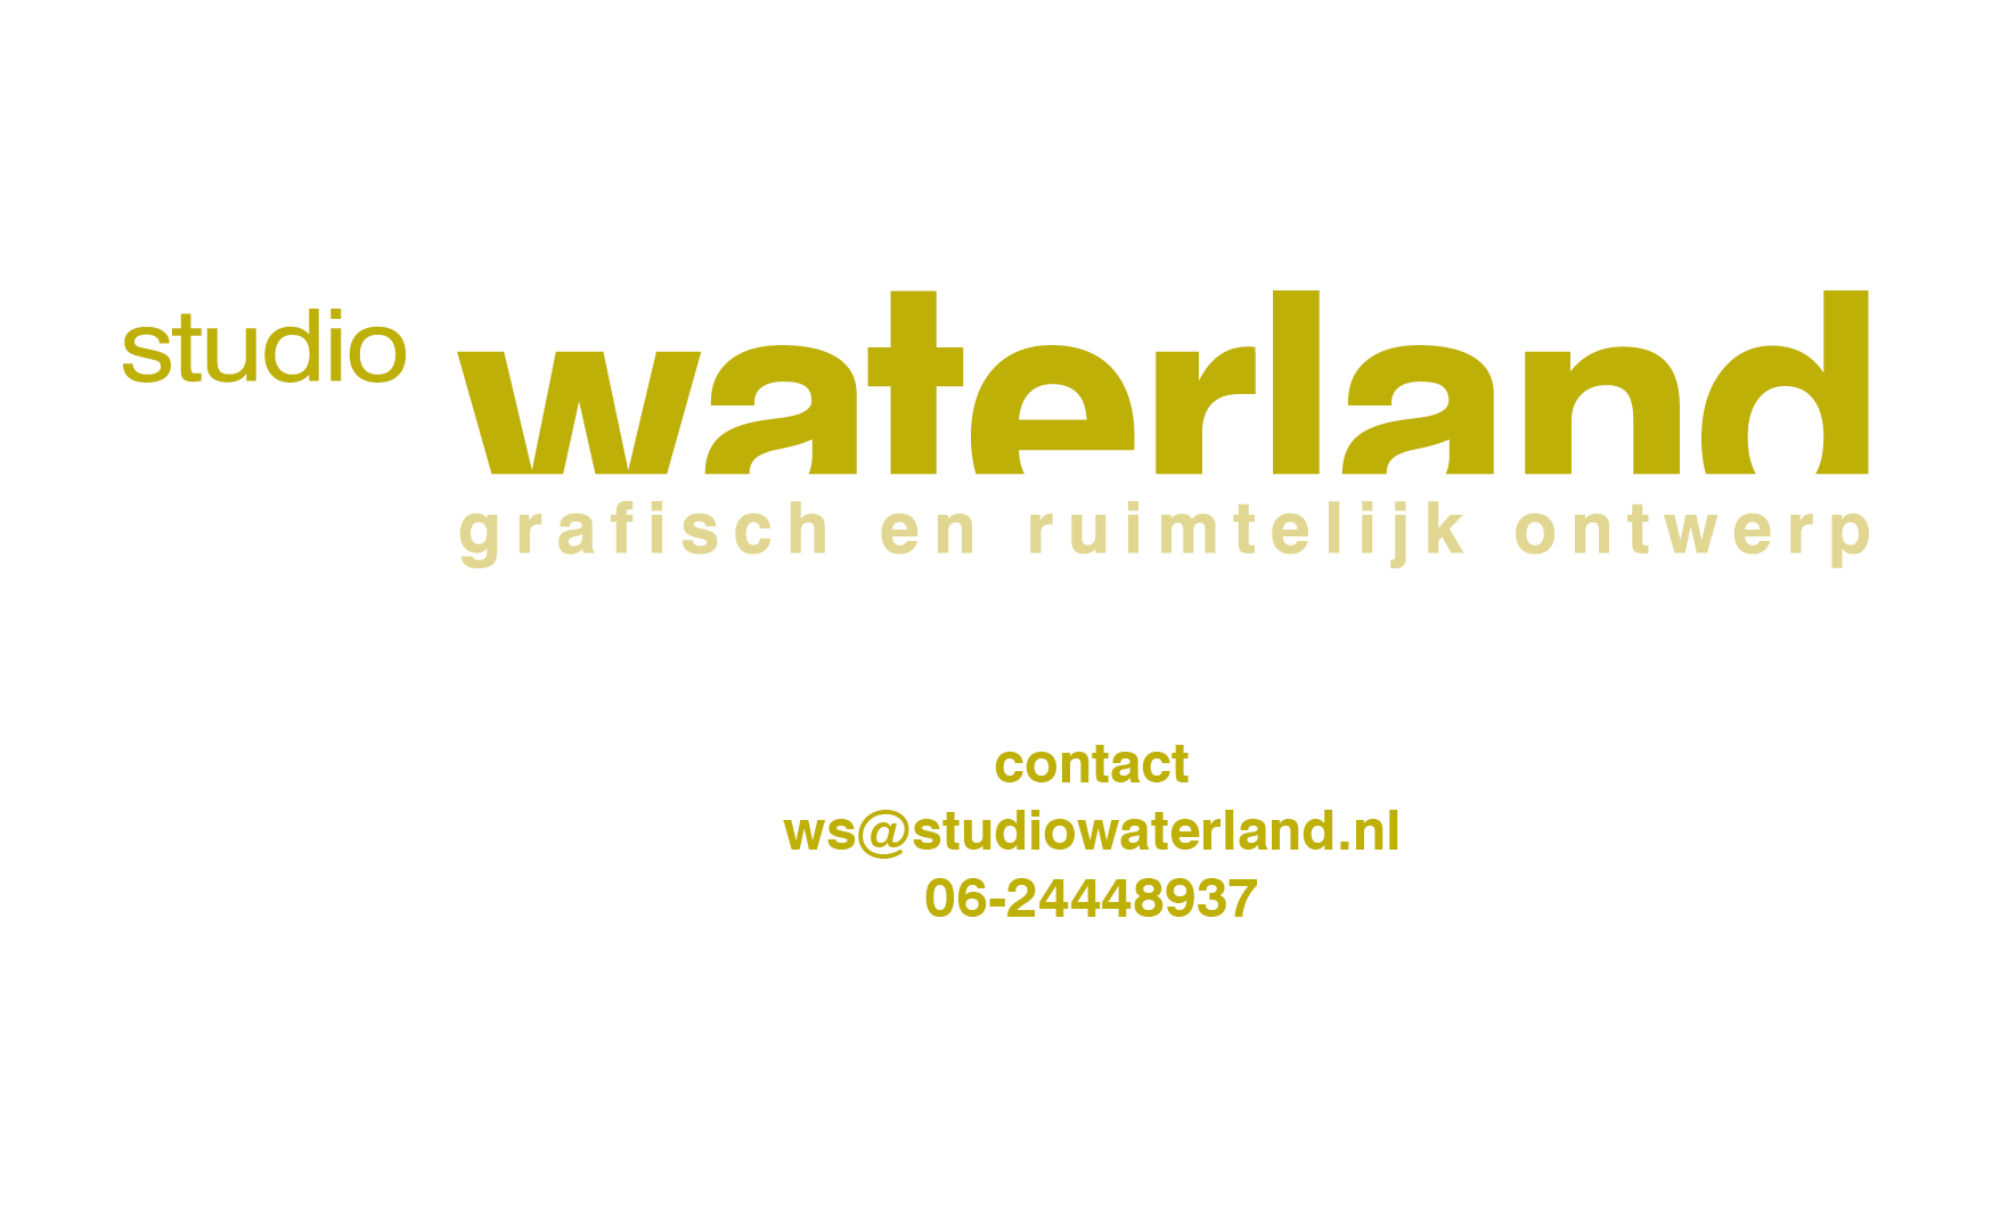 Studio Waterland